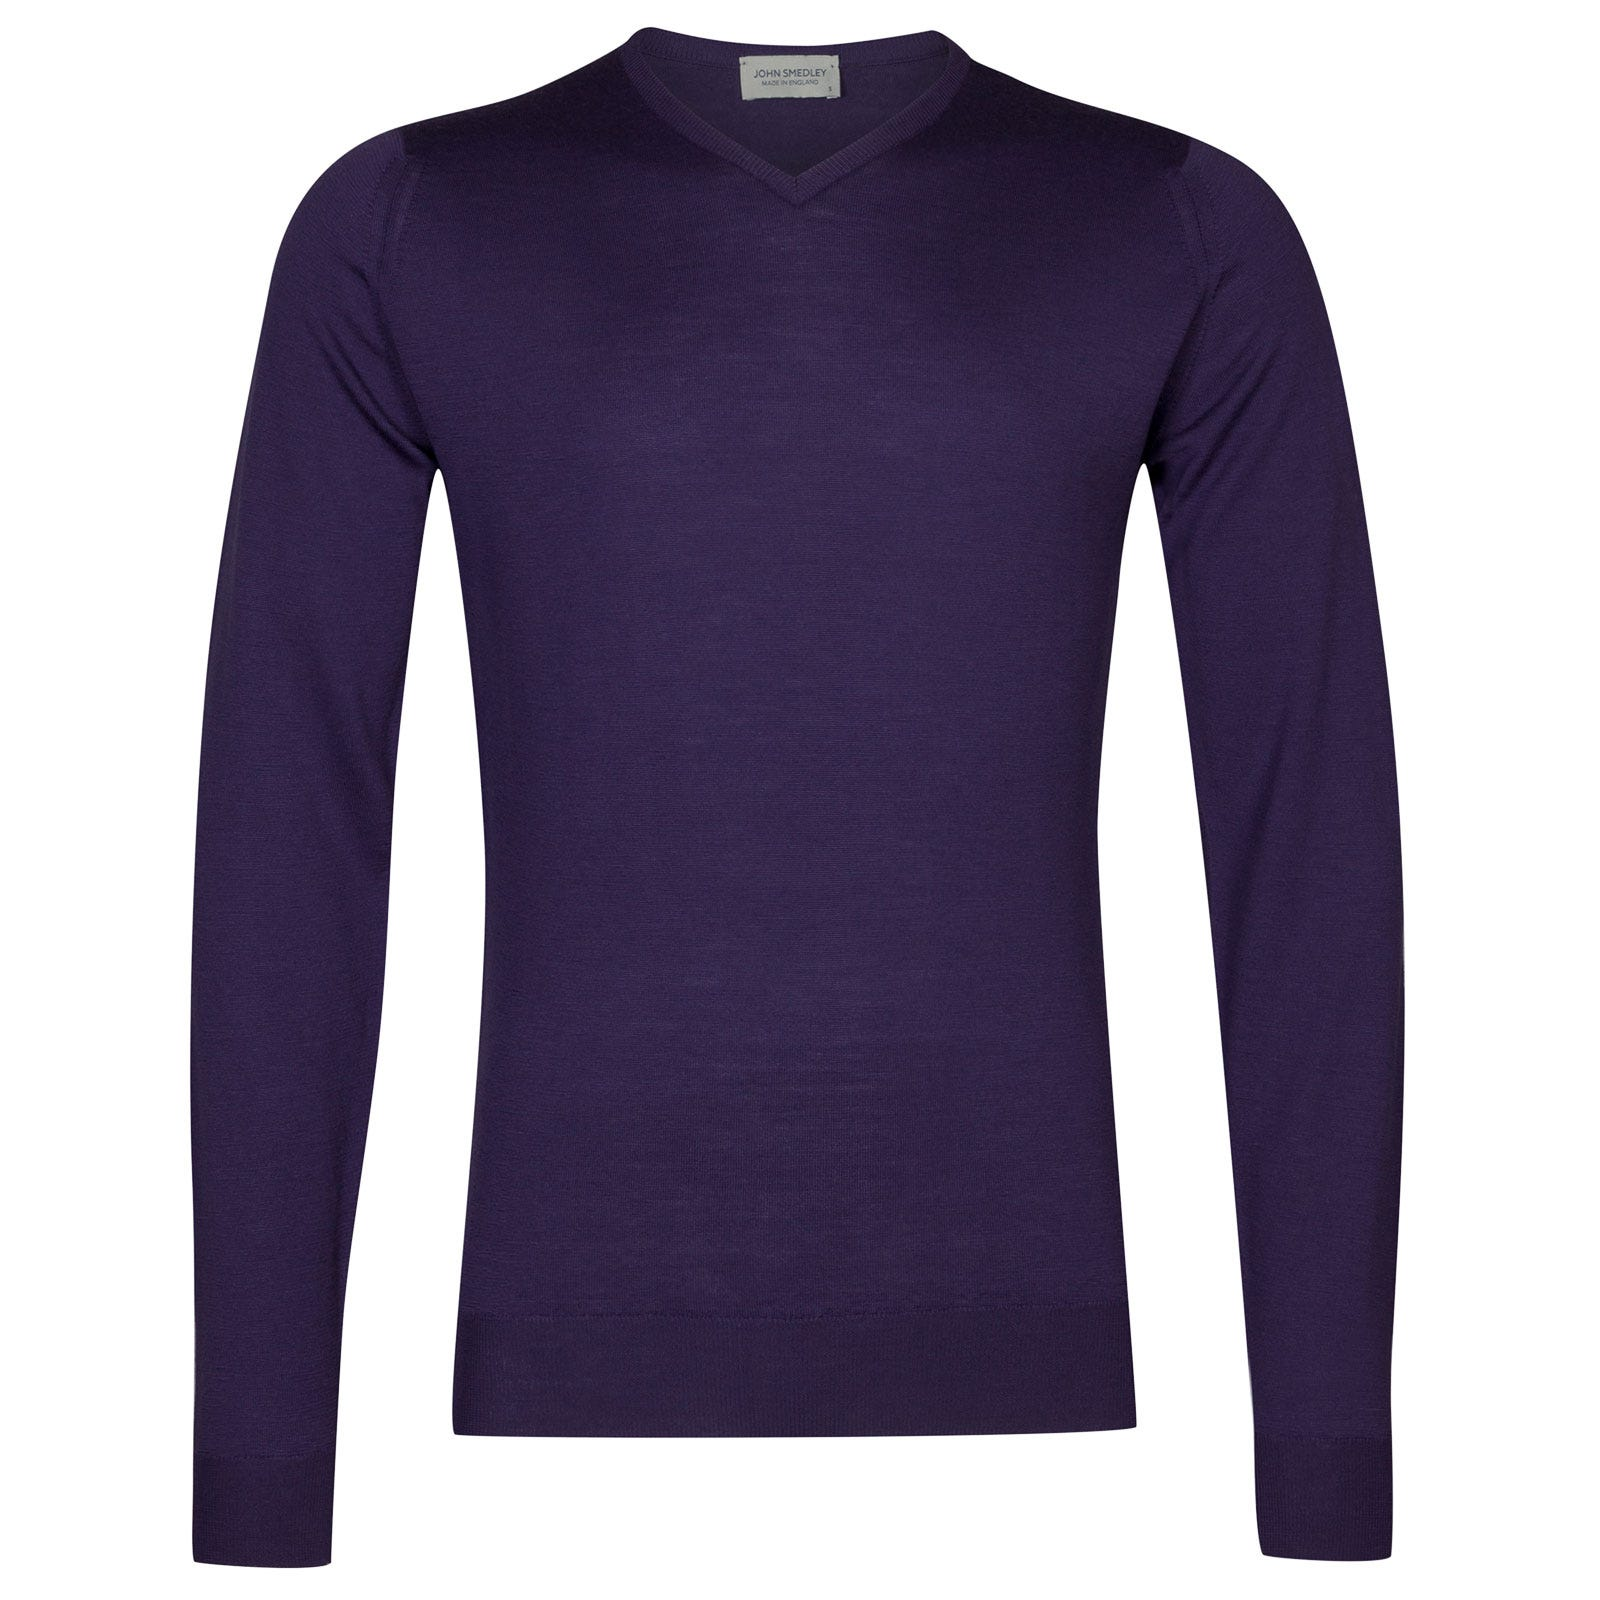 John Smedley shipton Merino Wool Pullover in Elderberry Purple-S